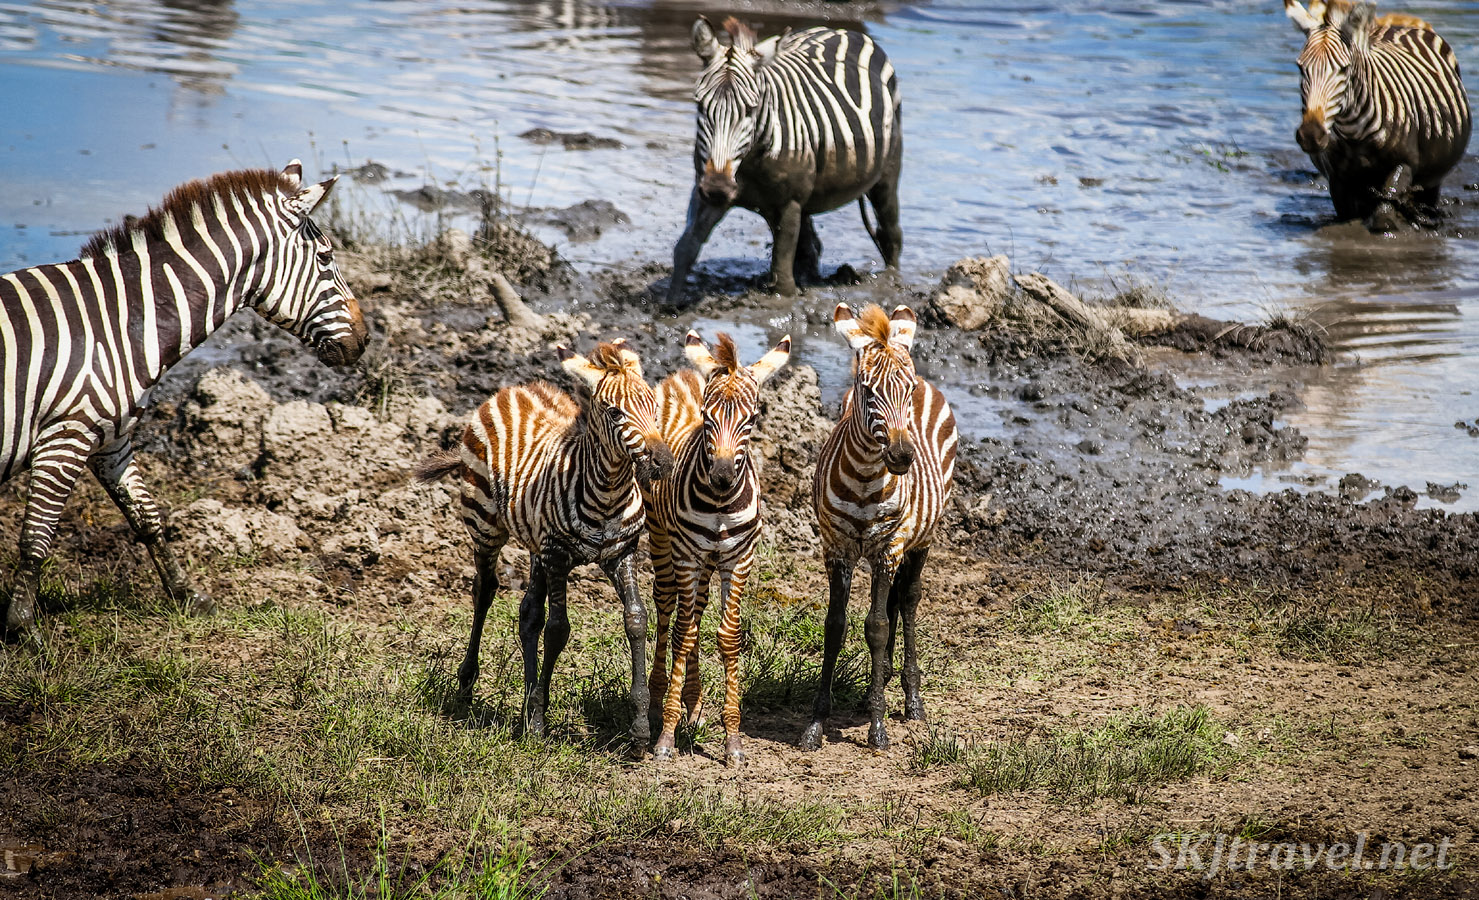 Trio of baby zebra, their stripes still red with youth, standing near water's edge. Ndutu, Tanzania.